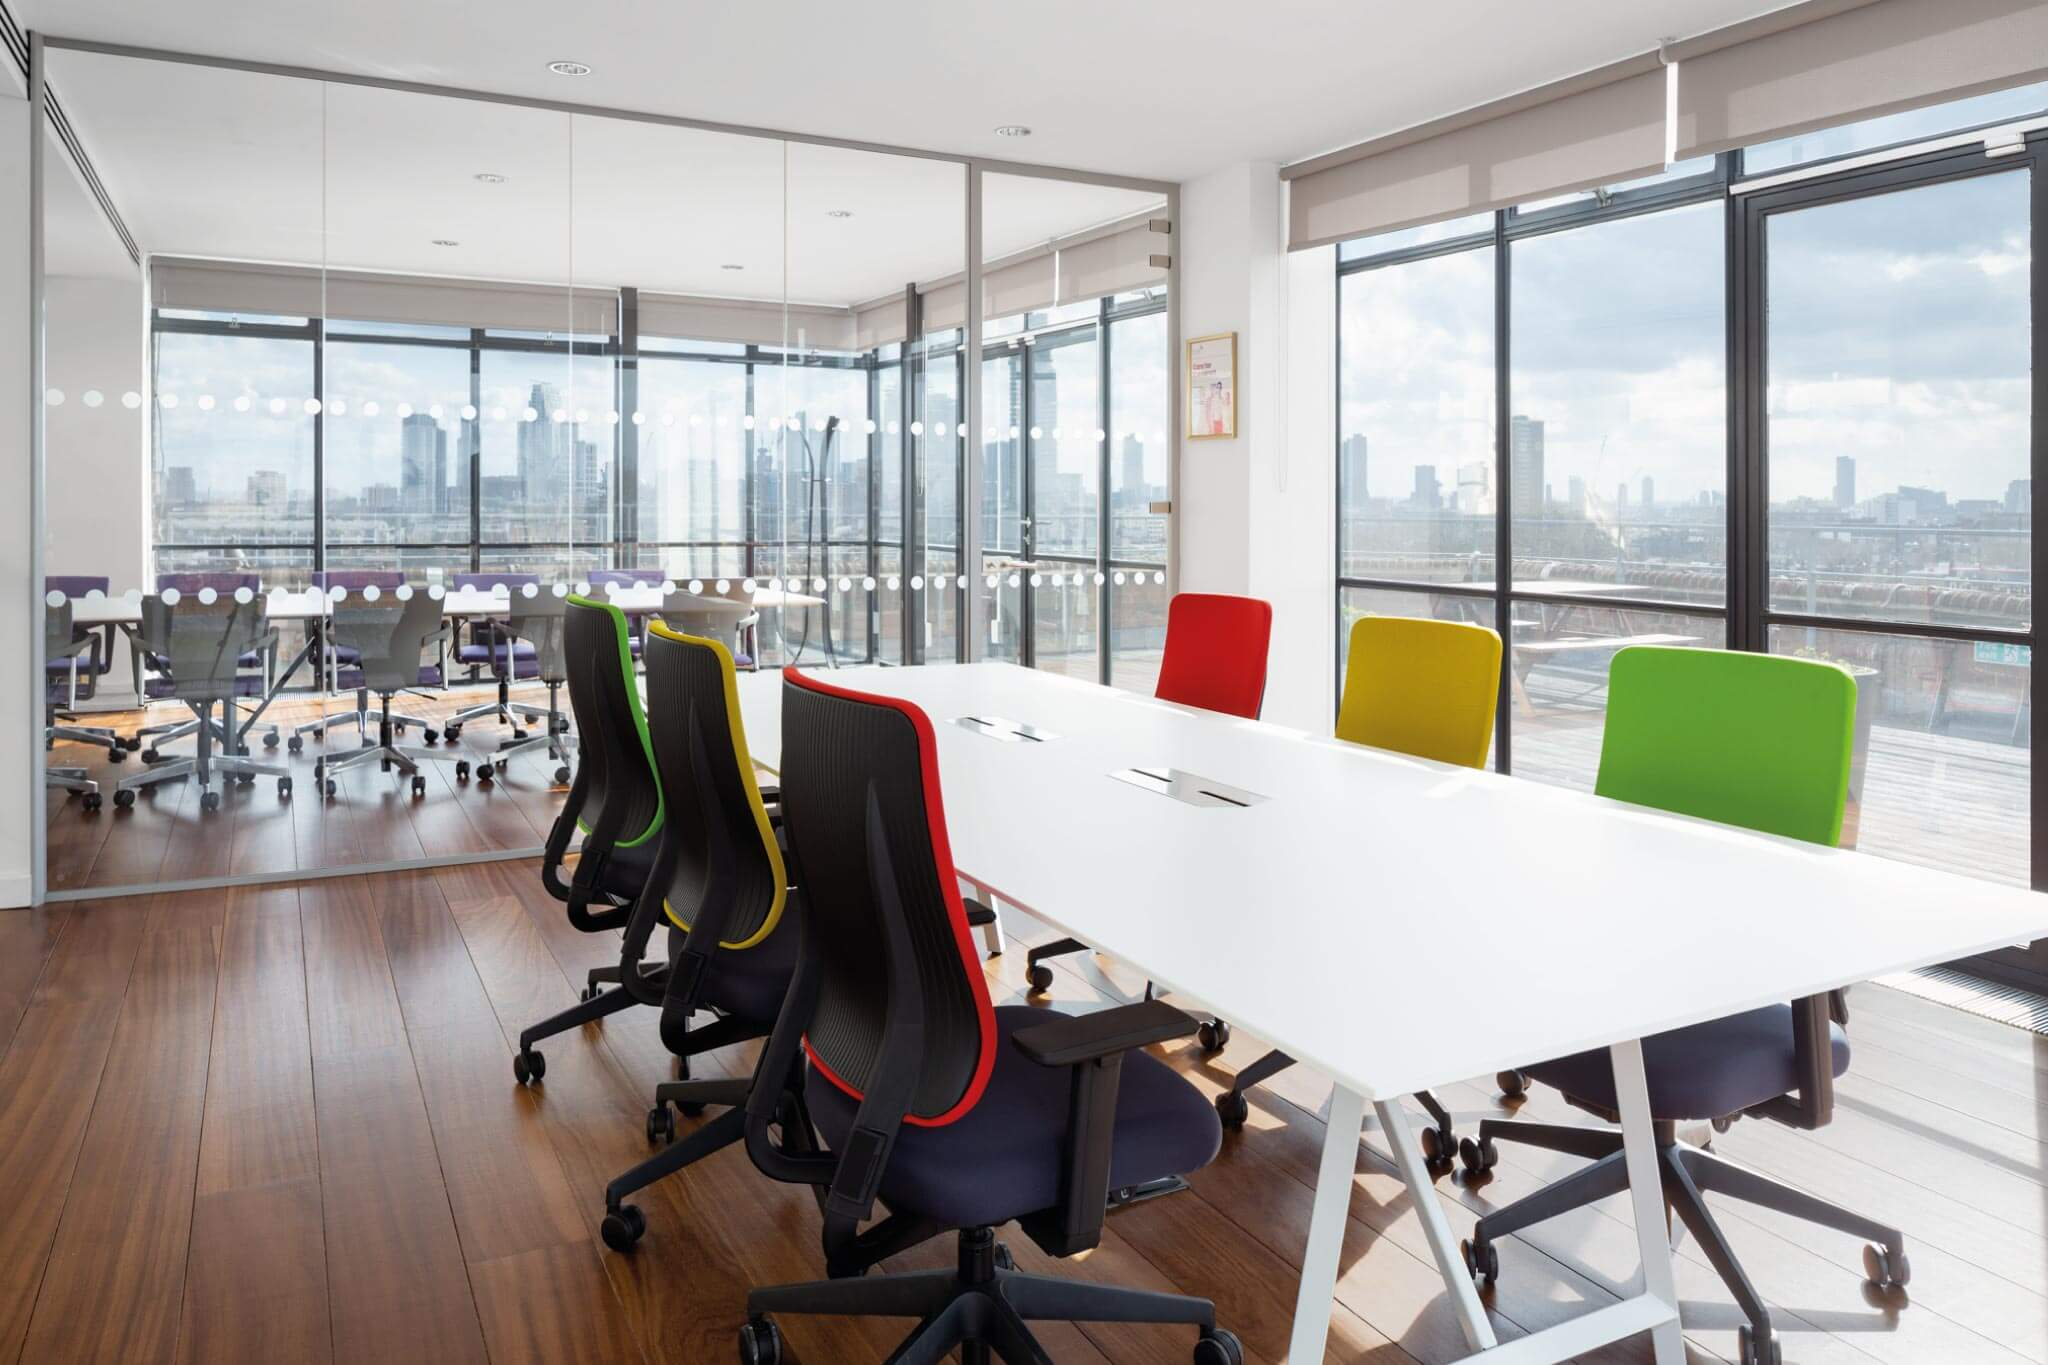 Servelec---London---Dale-Office-Interiors---Meeting-Room-2019